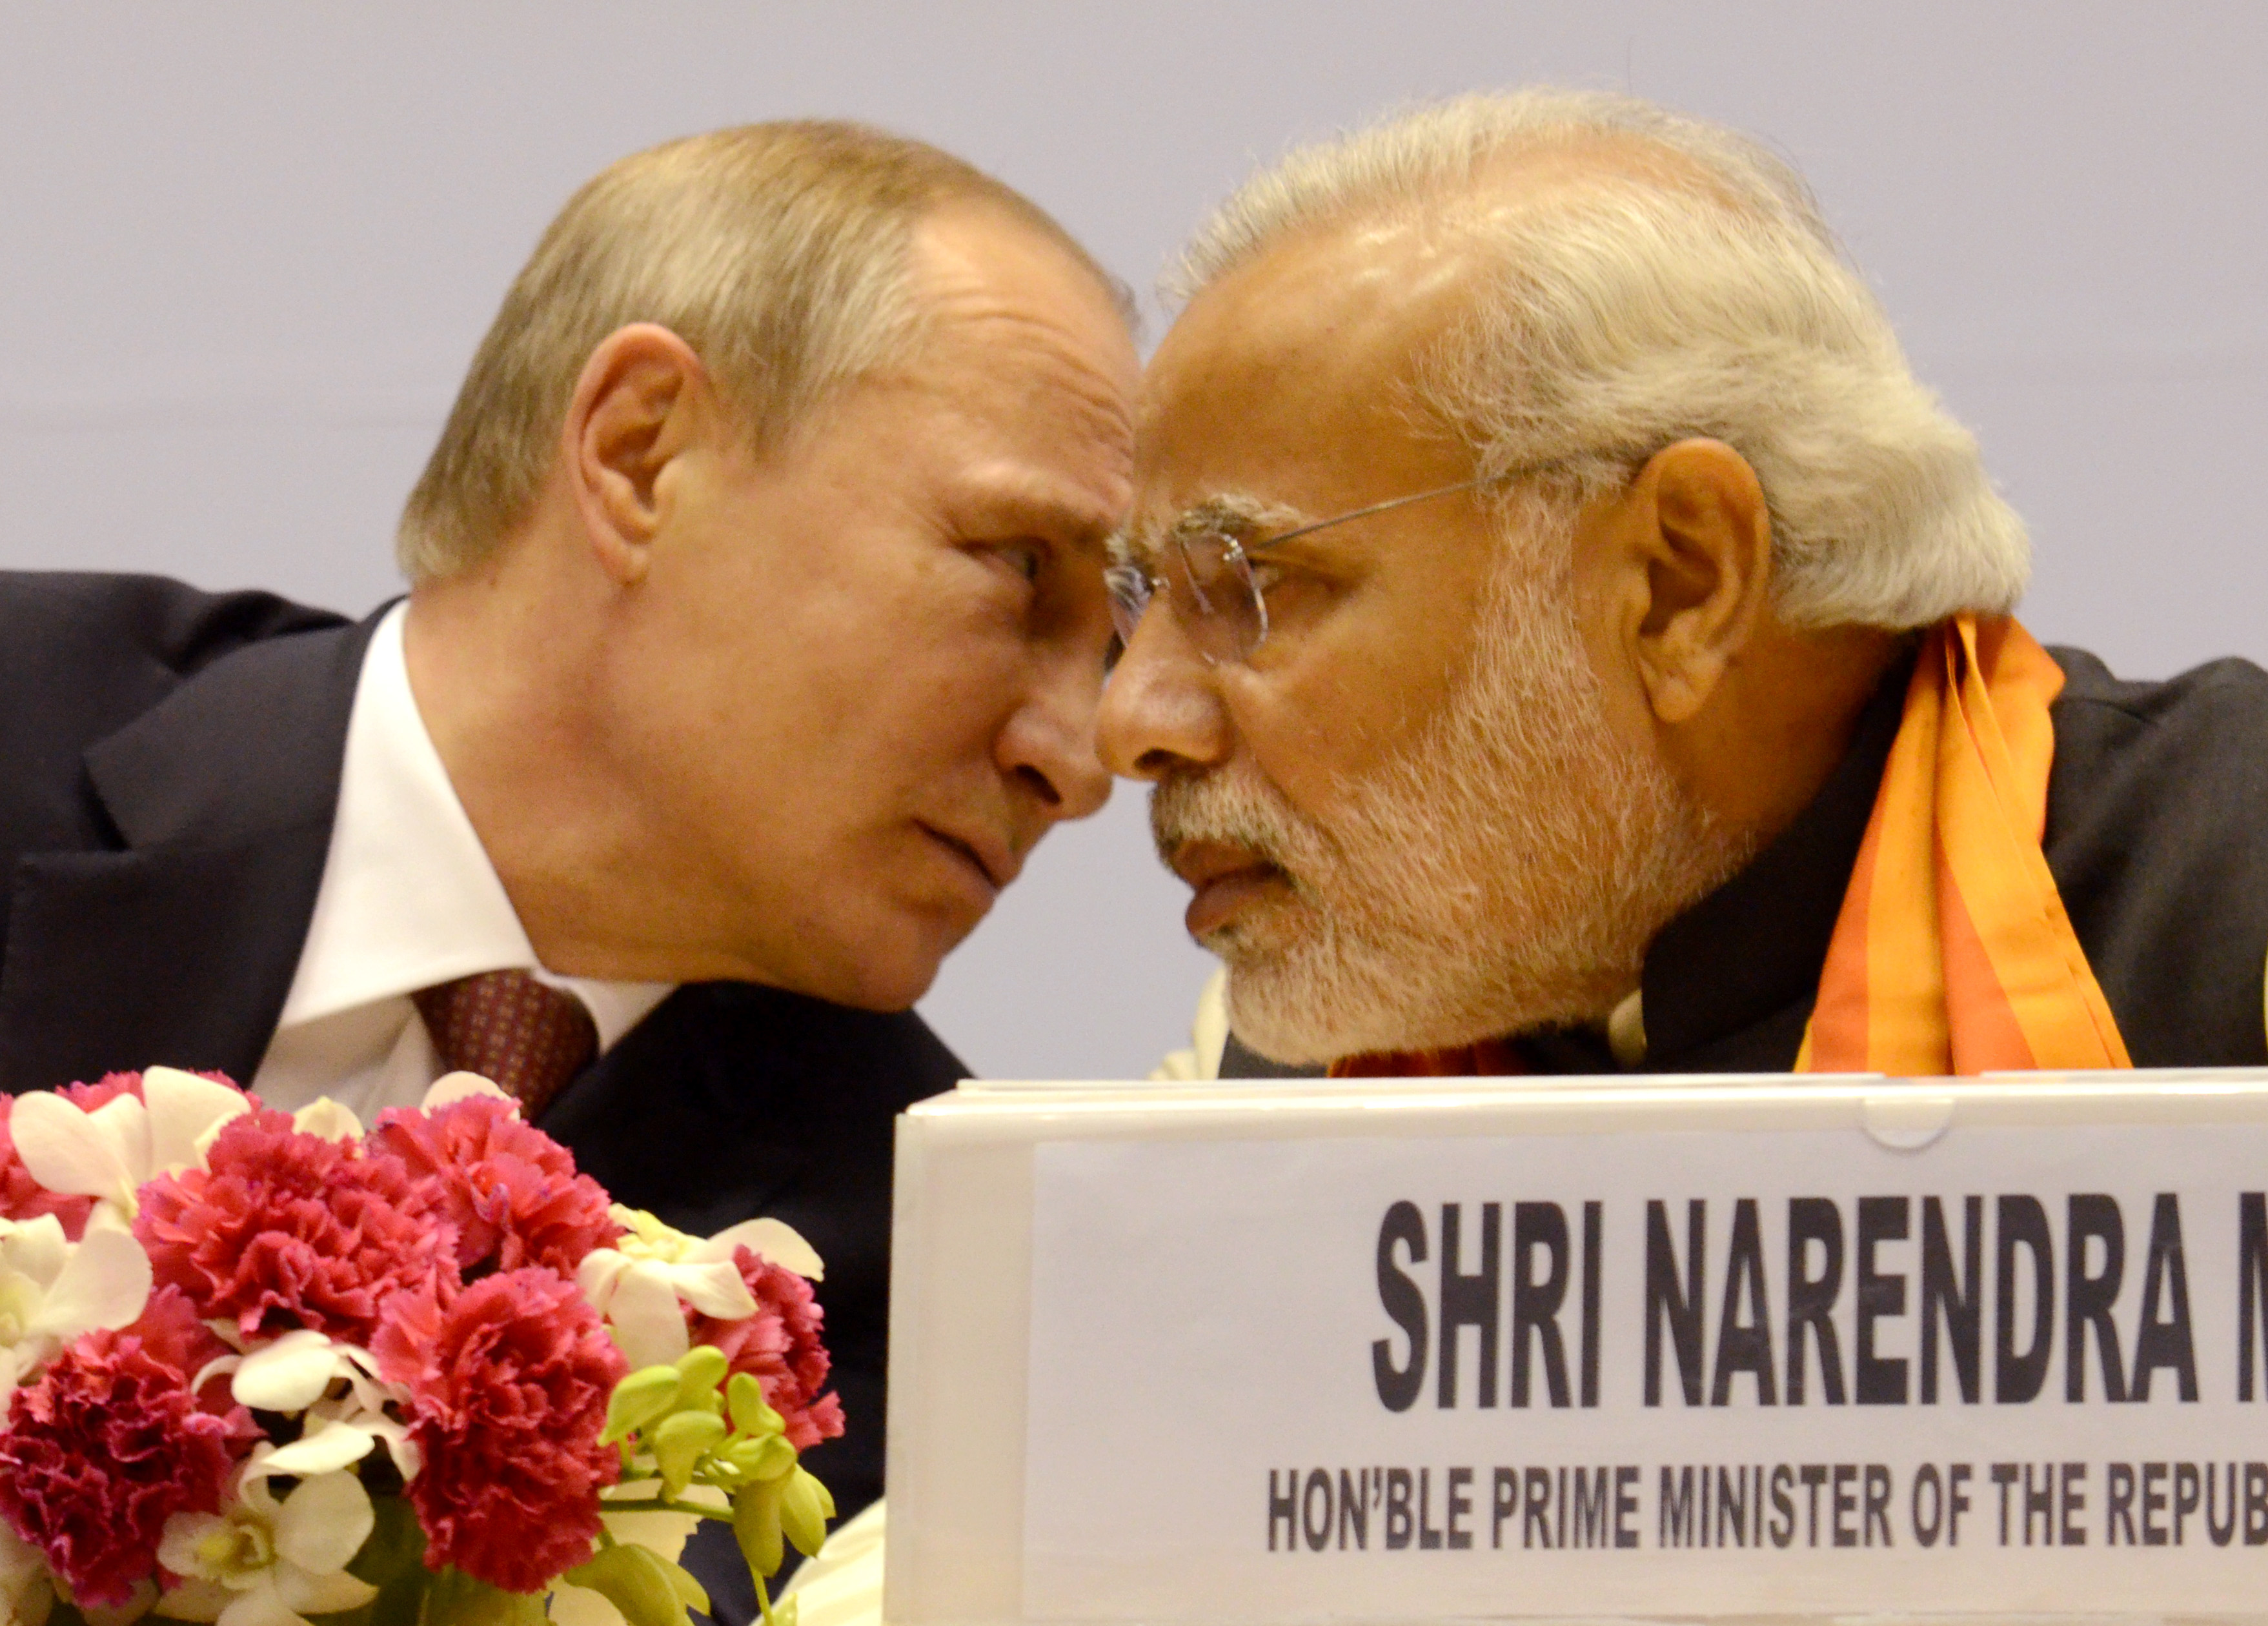 India and Russia's atmosphere of bonhomie is partly contrived out of necessity on both sides.